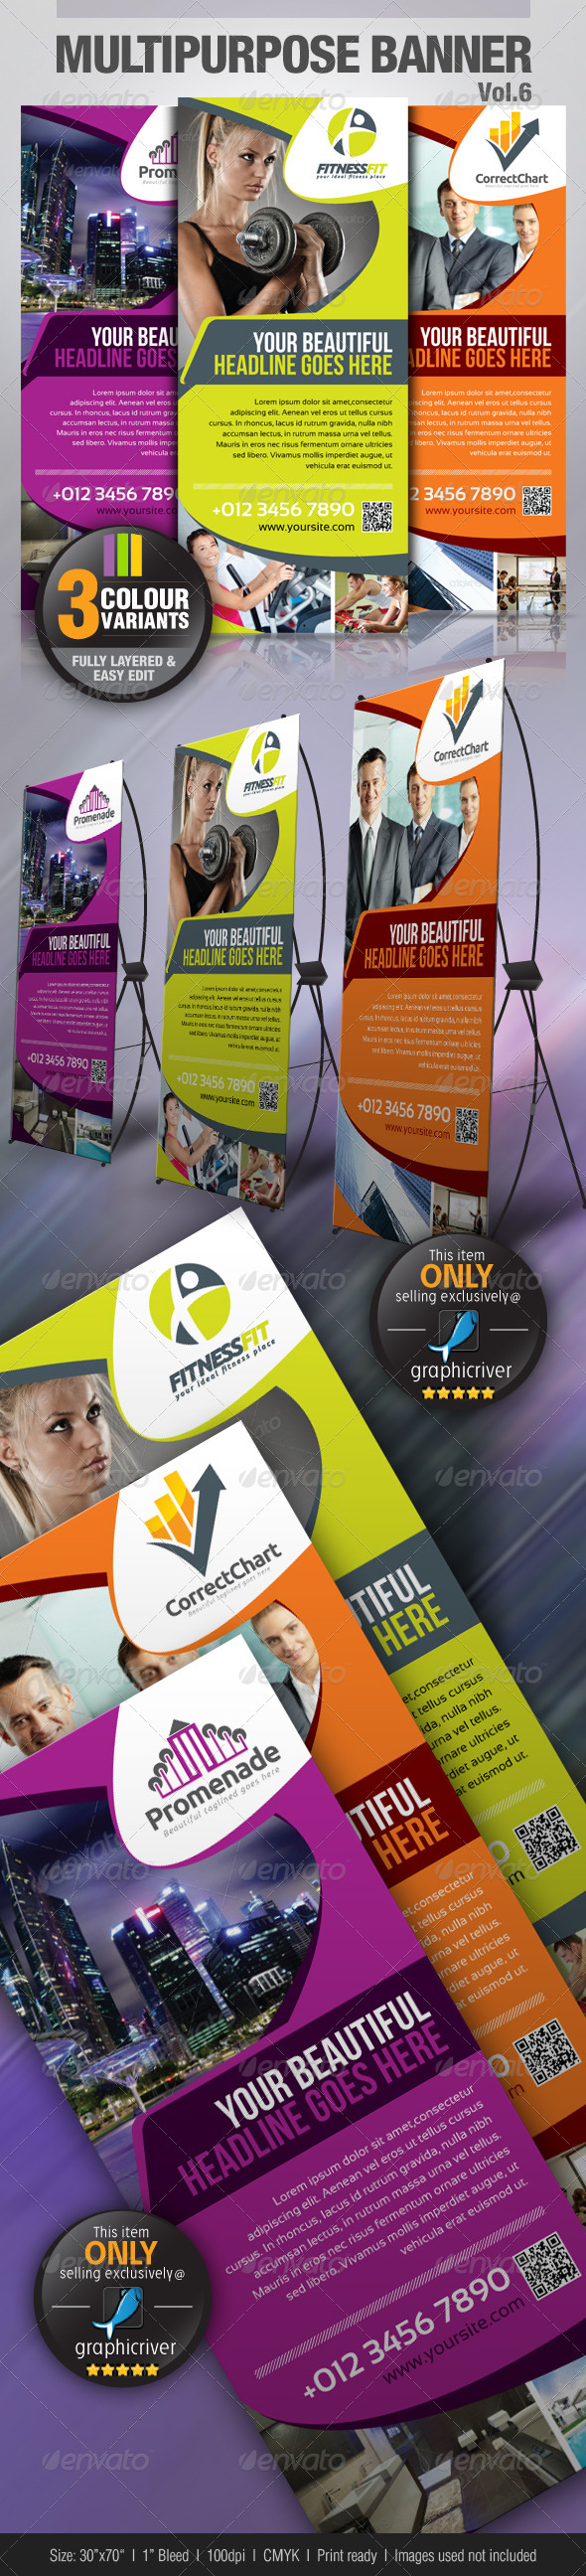 Multipurpose Banner Vol.5 - Signage Print Templates